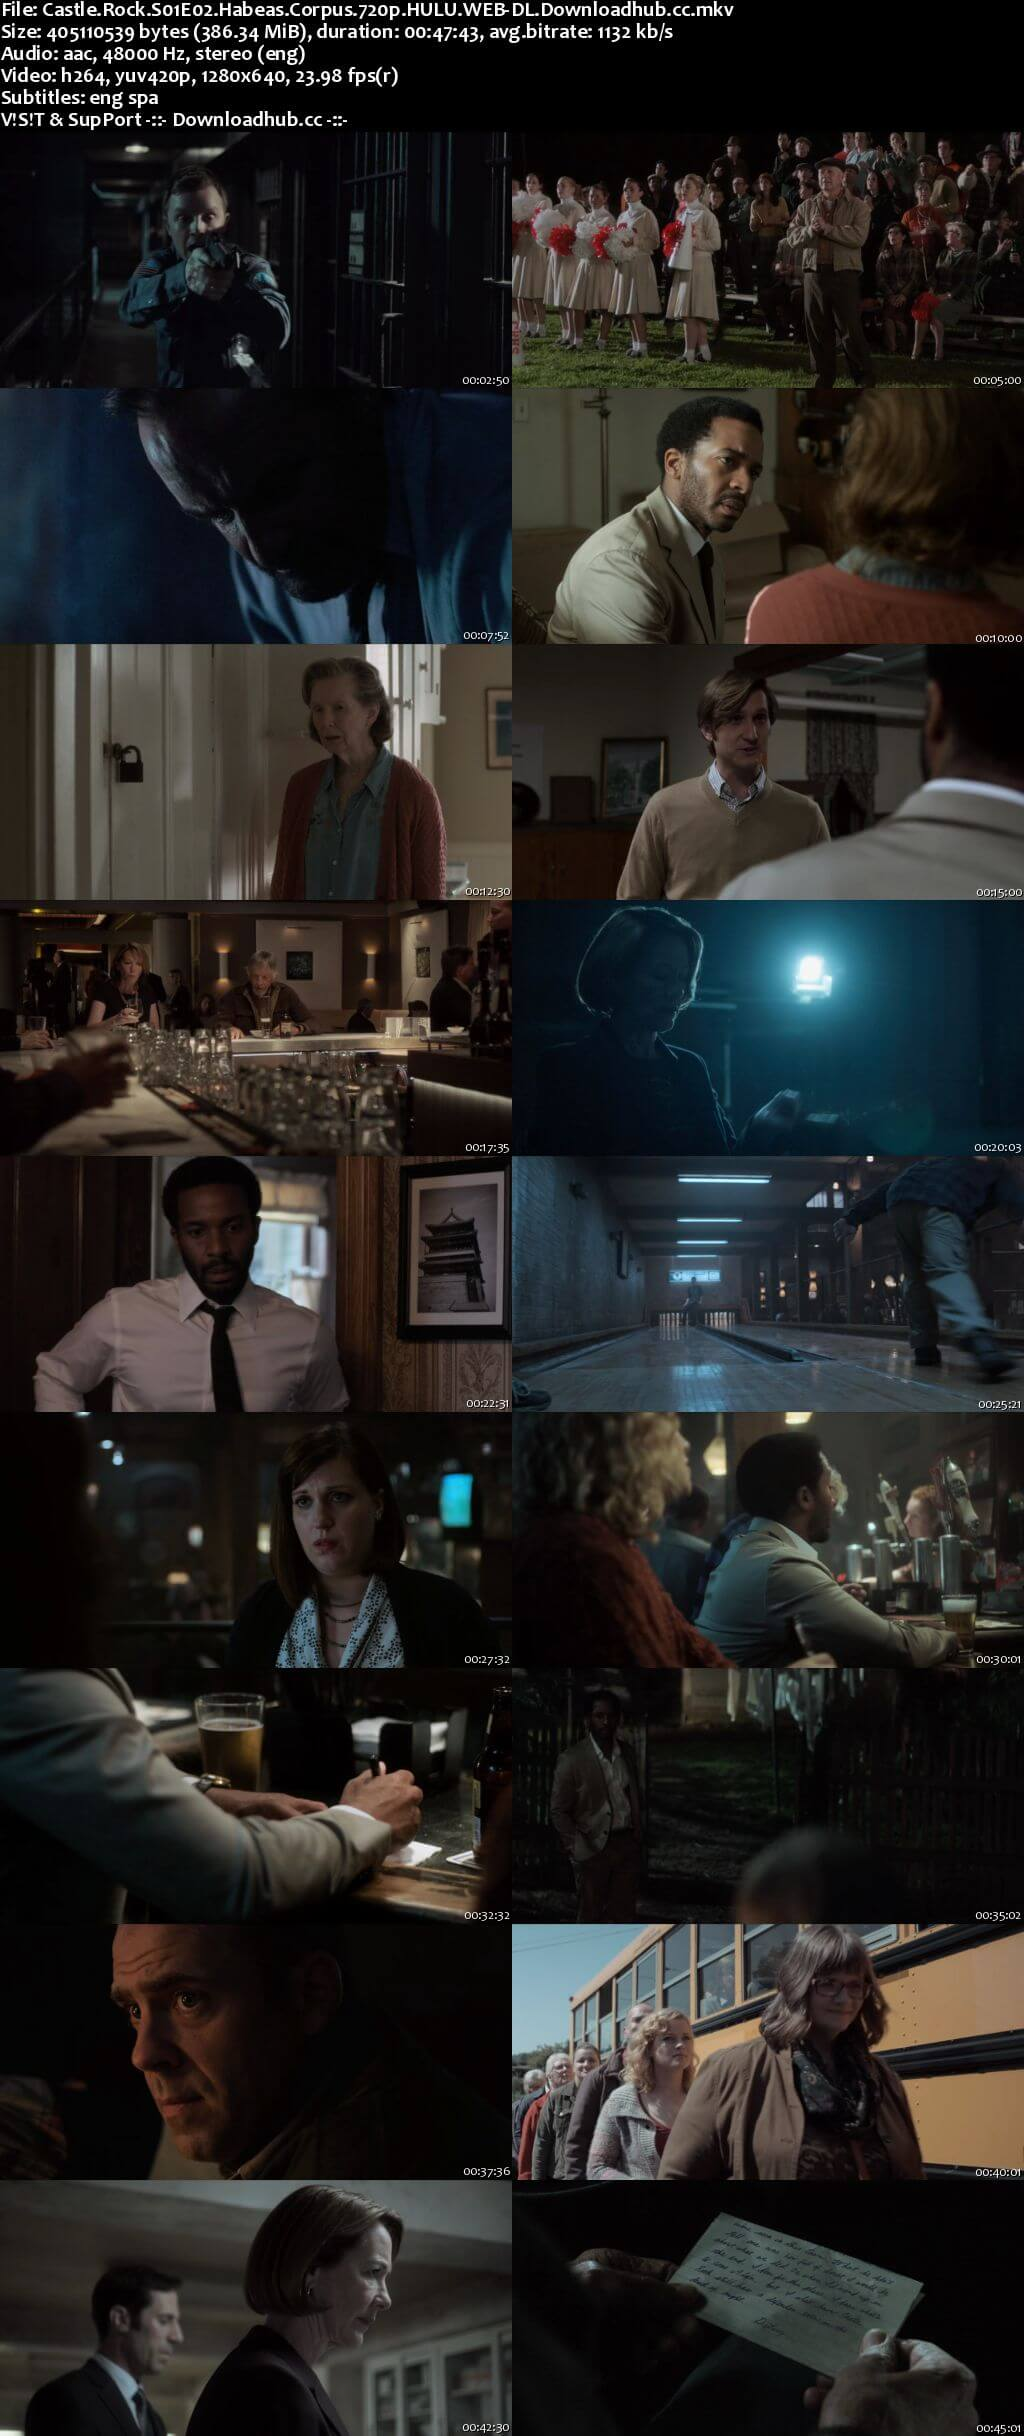 Castle Rock S01E02 380MB WEB-DL 720p ESubs